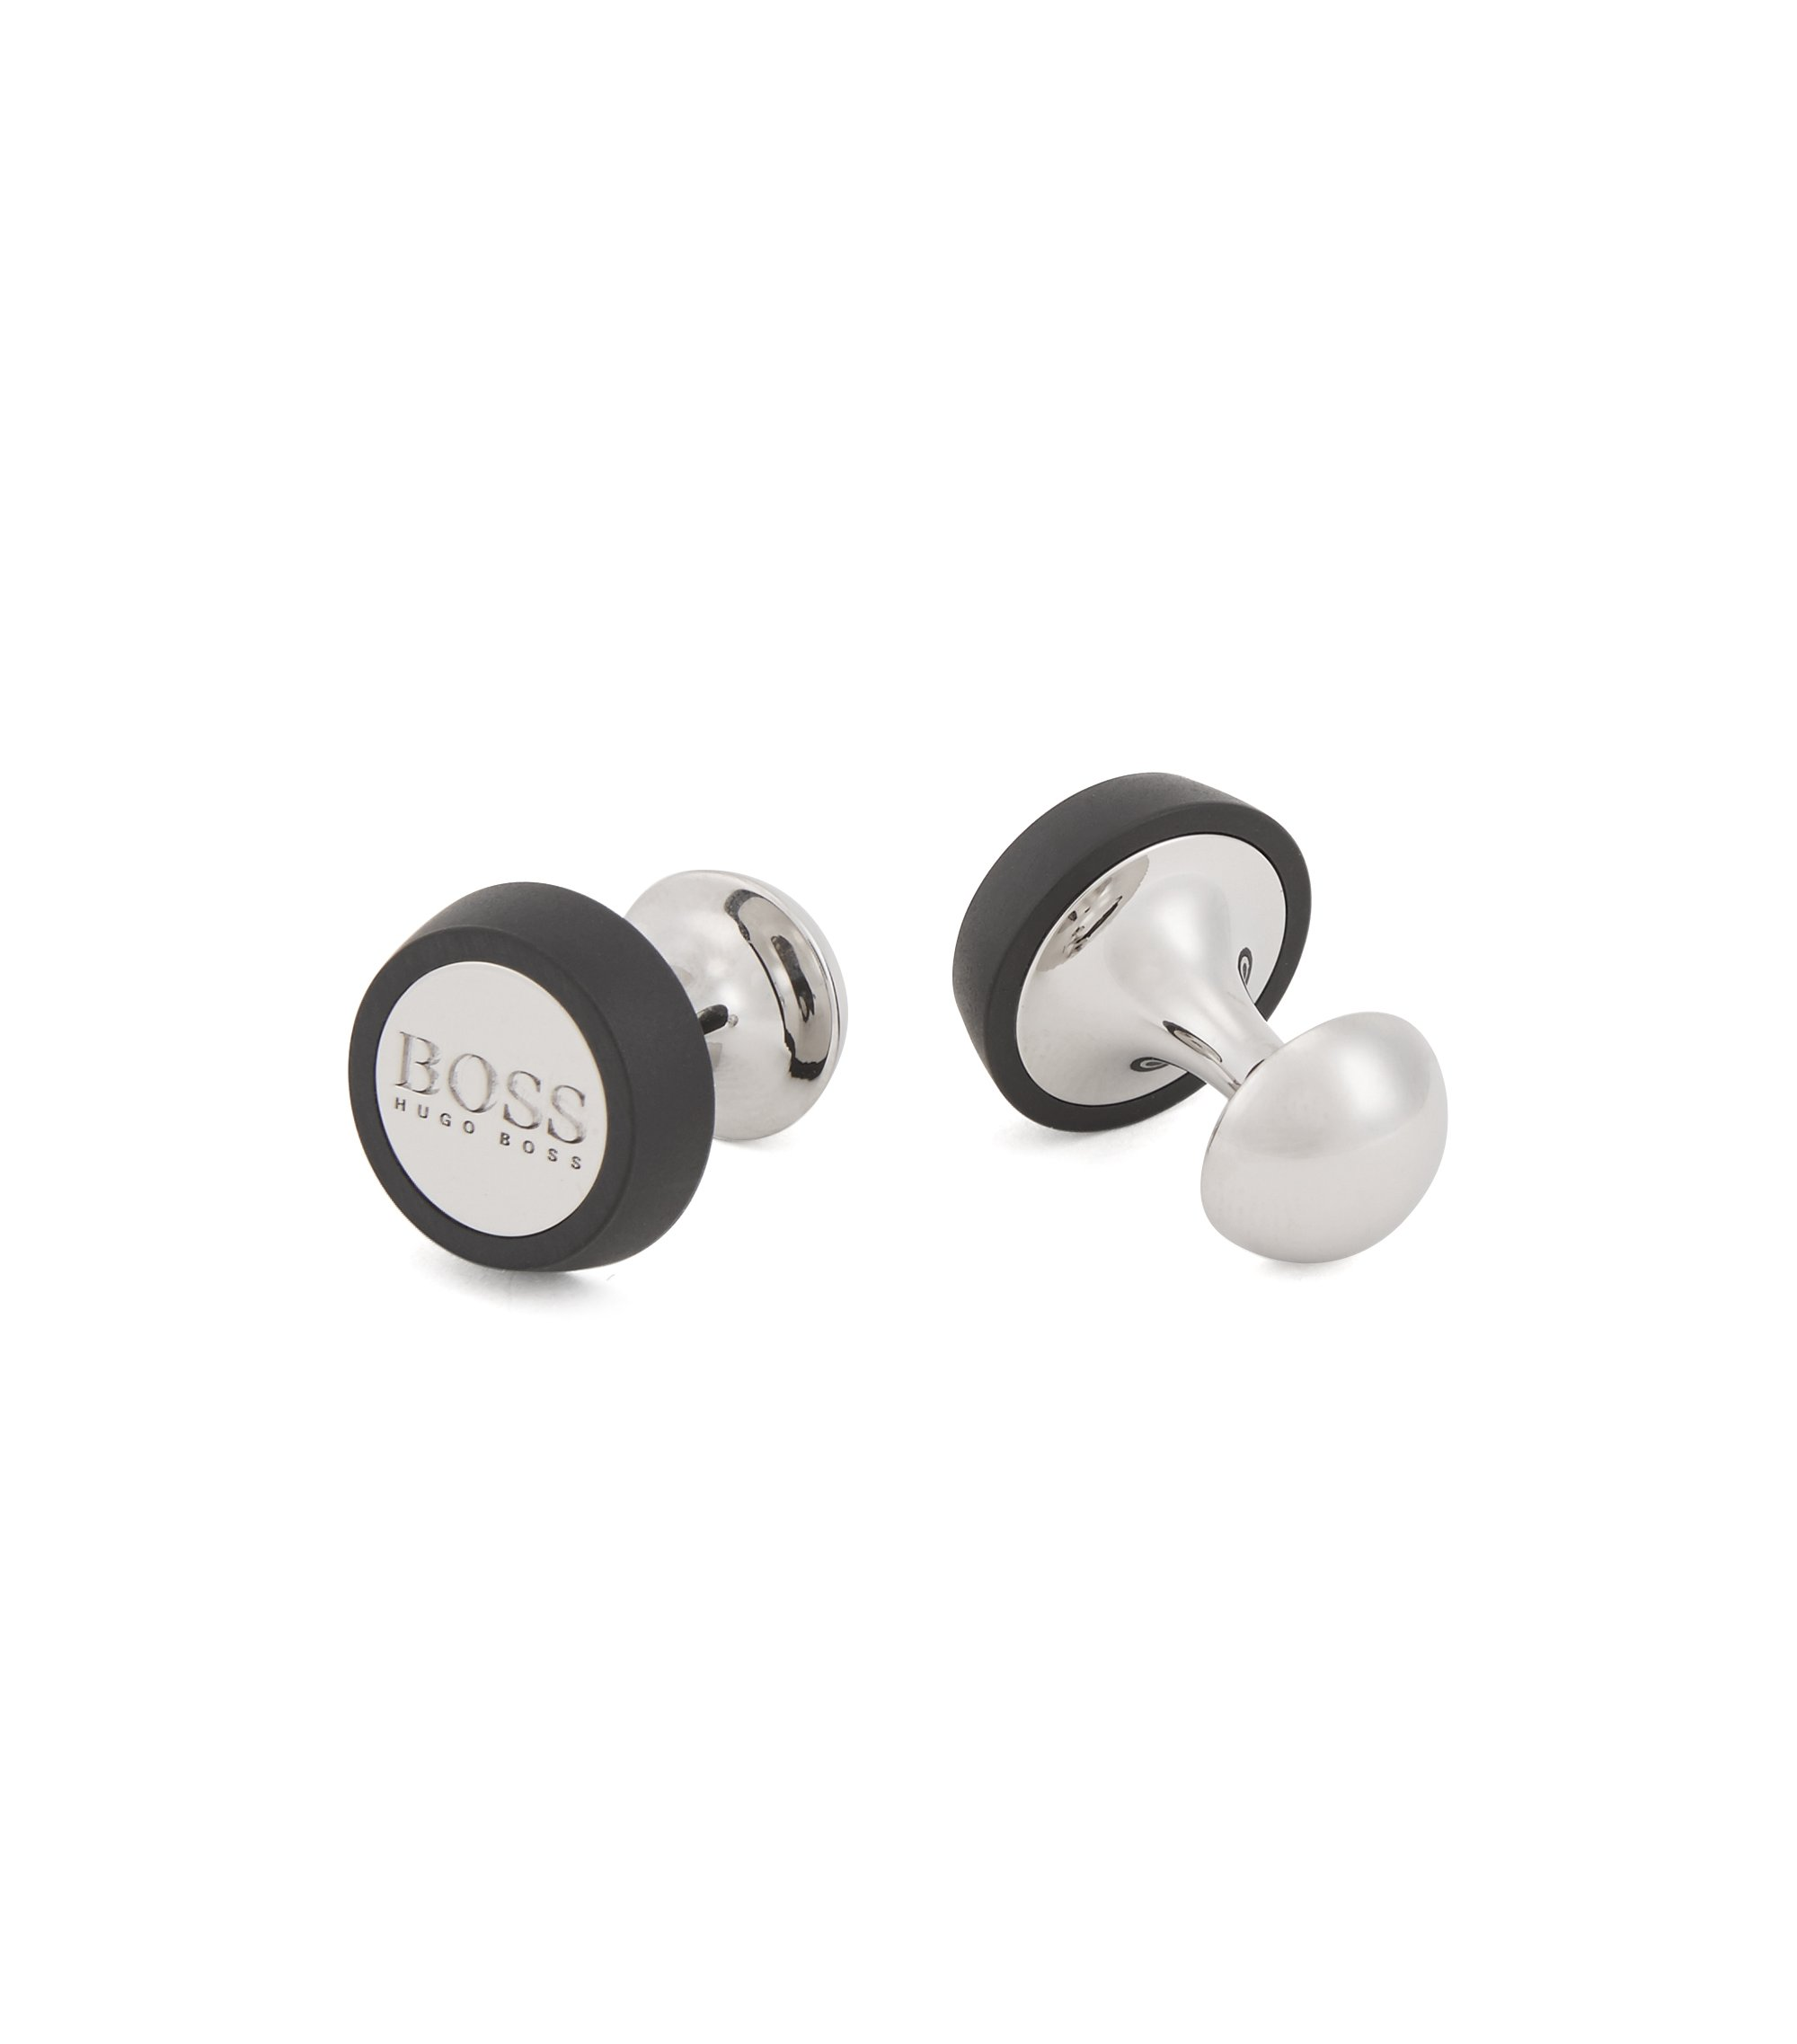 Hand-polished round cufflinks with matte enamel detailing, Black